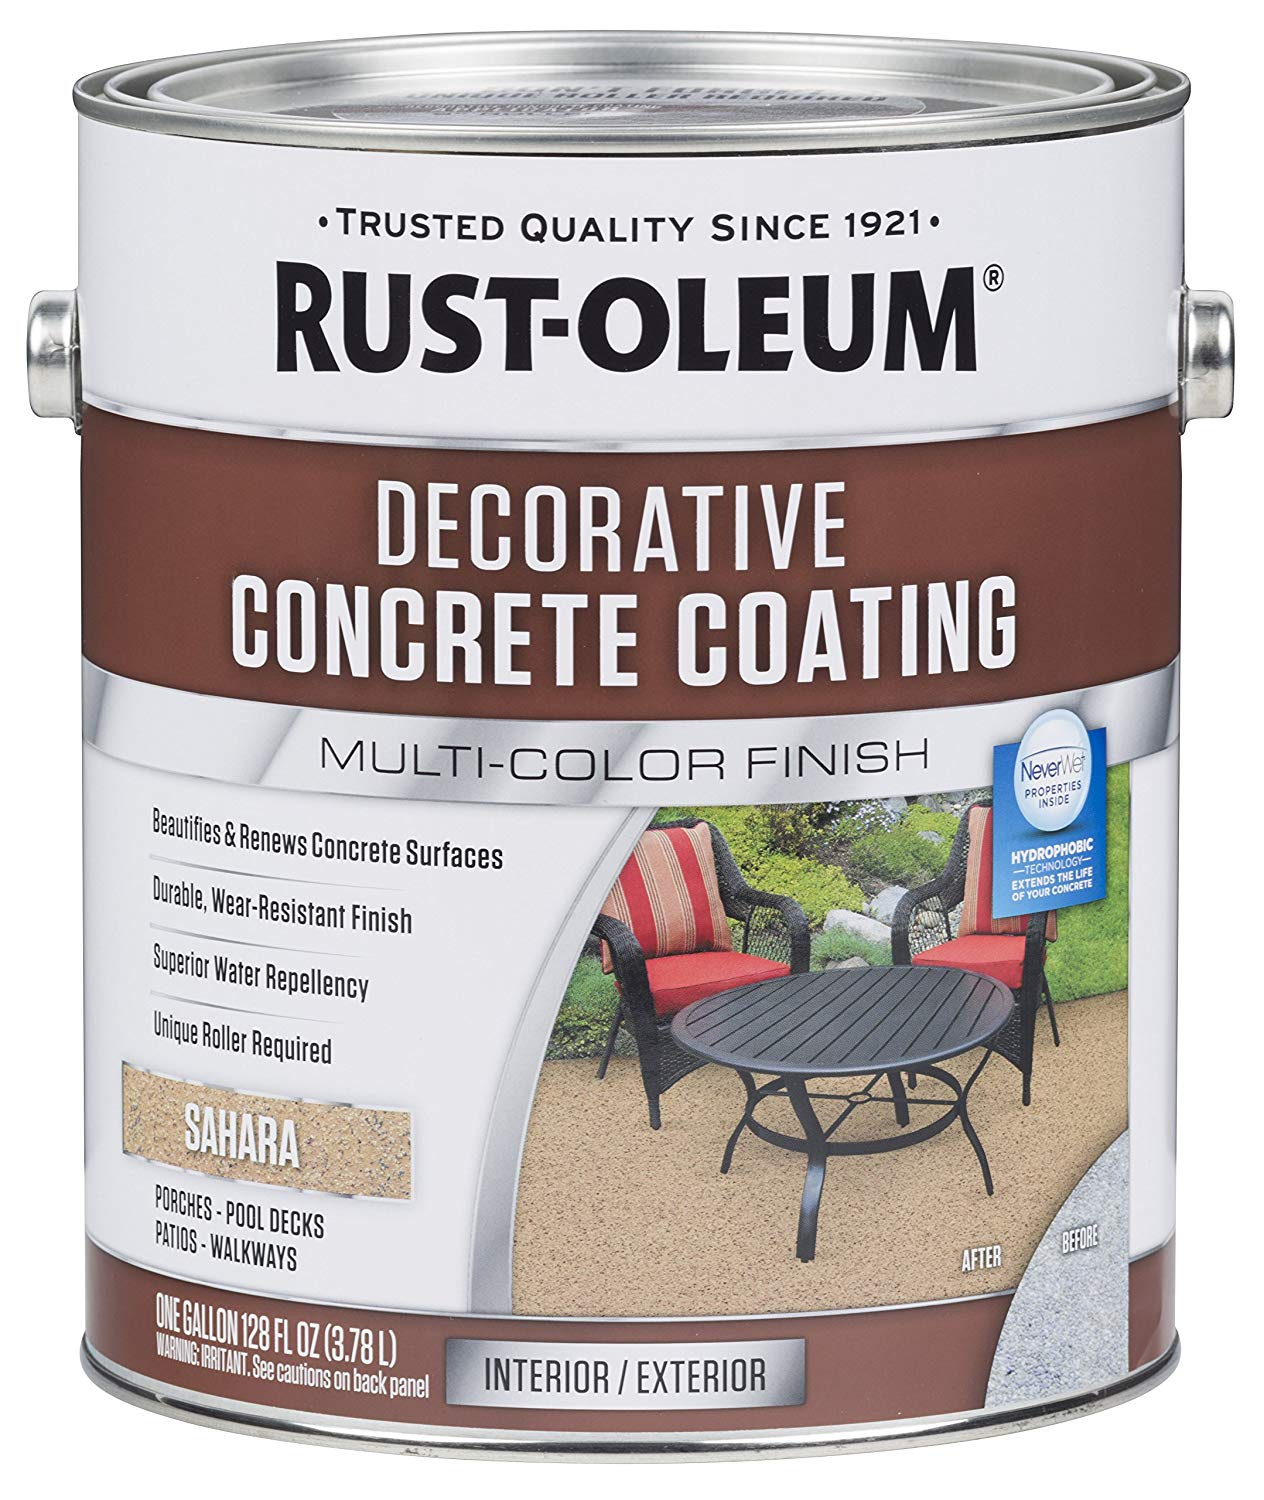 Rust-Oleum Decorative Concrete Coating review